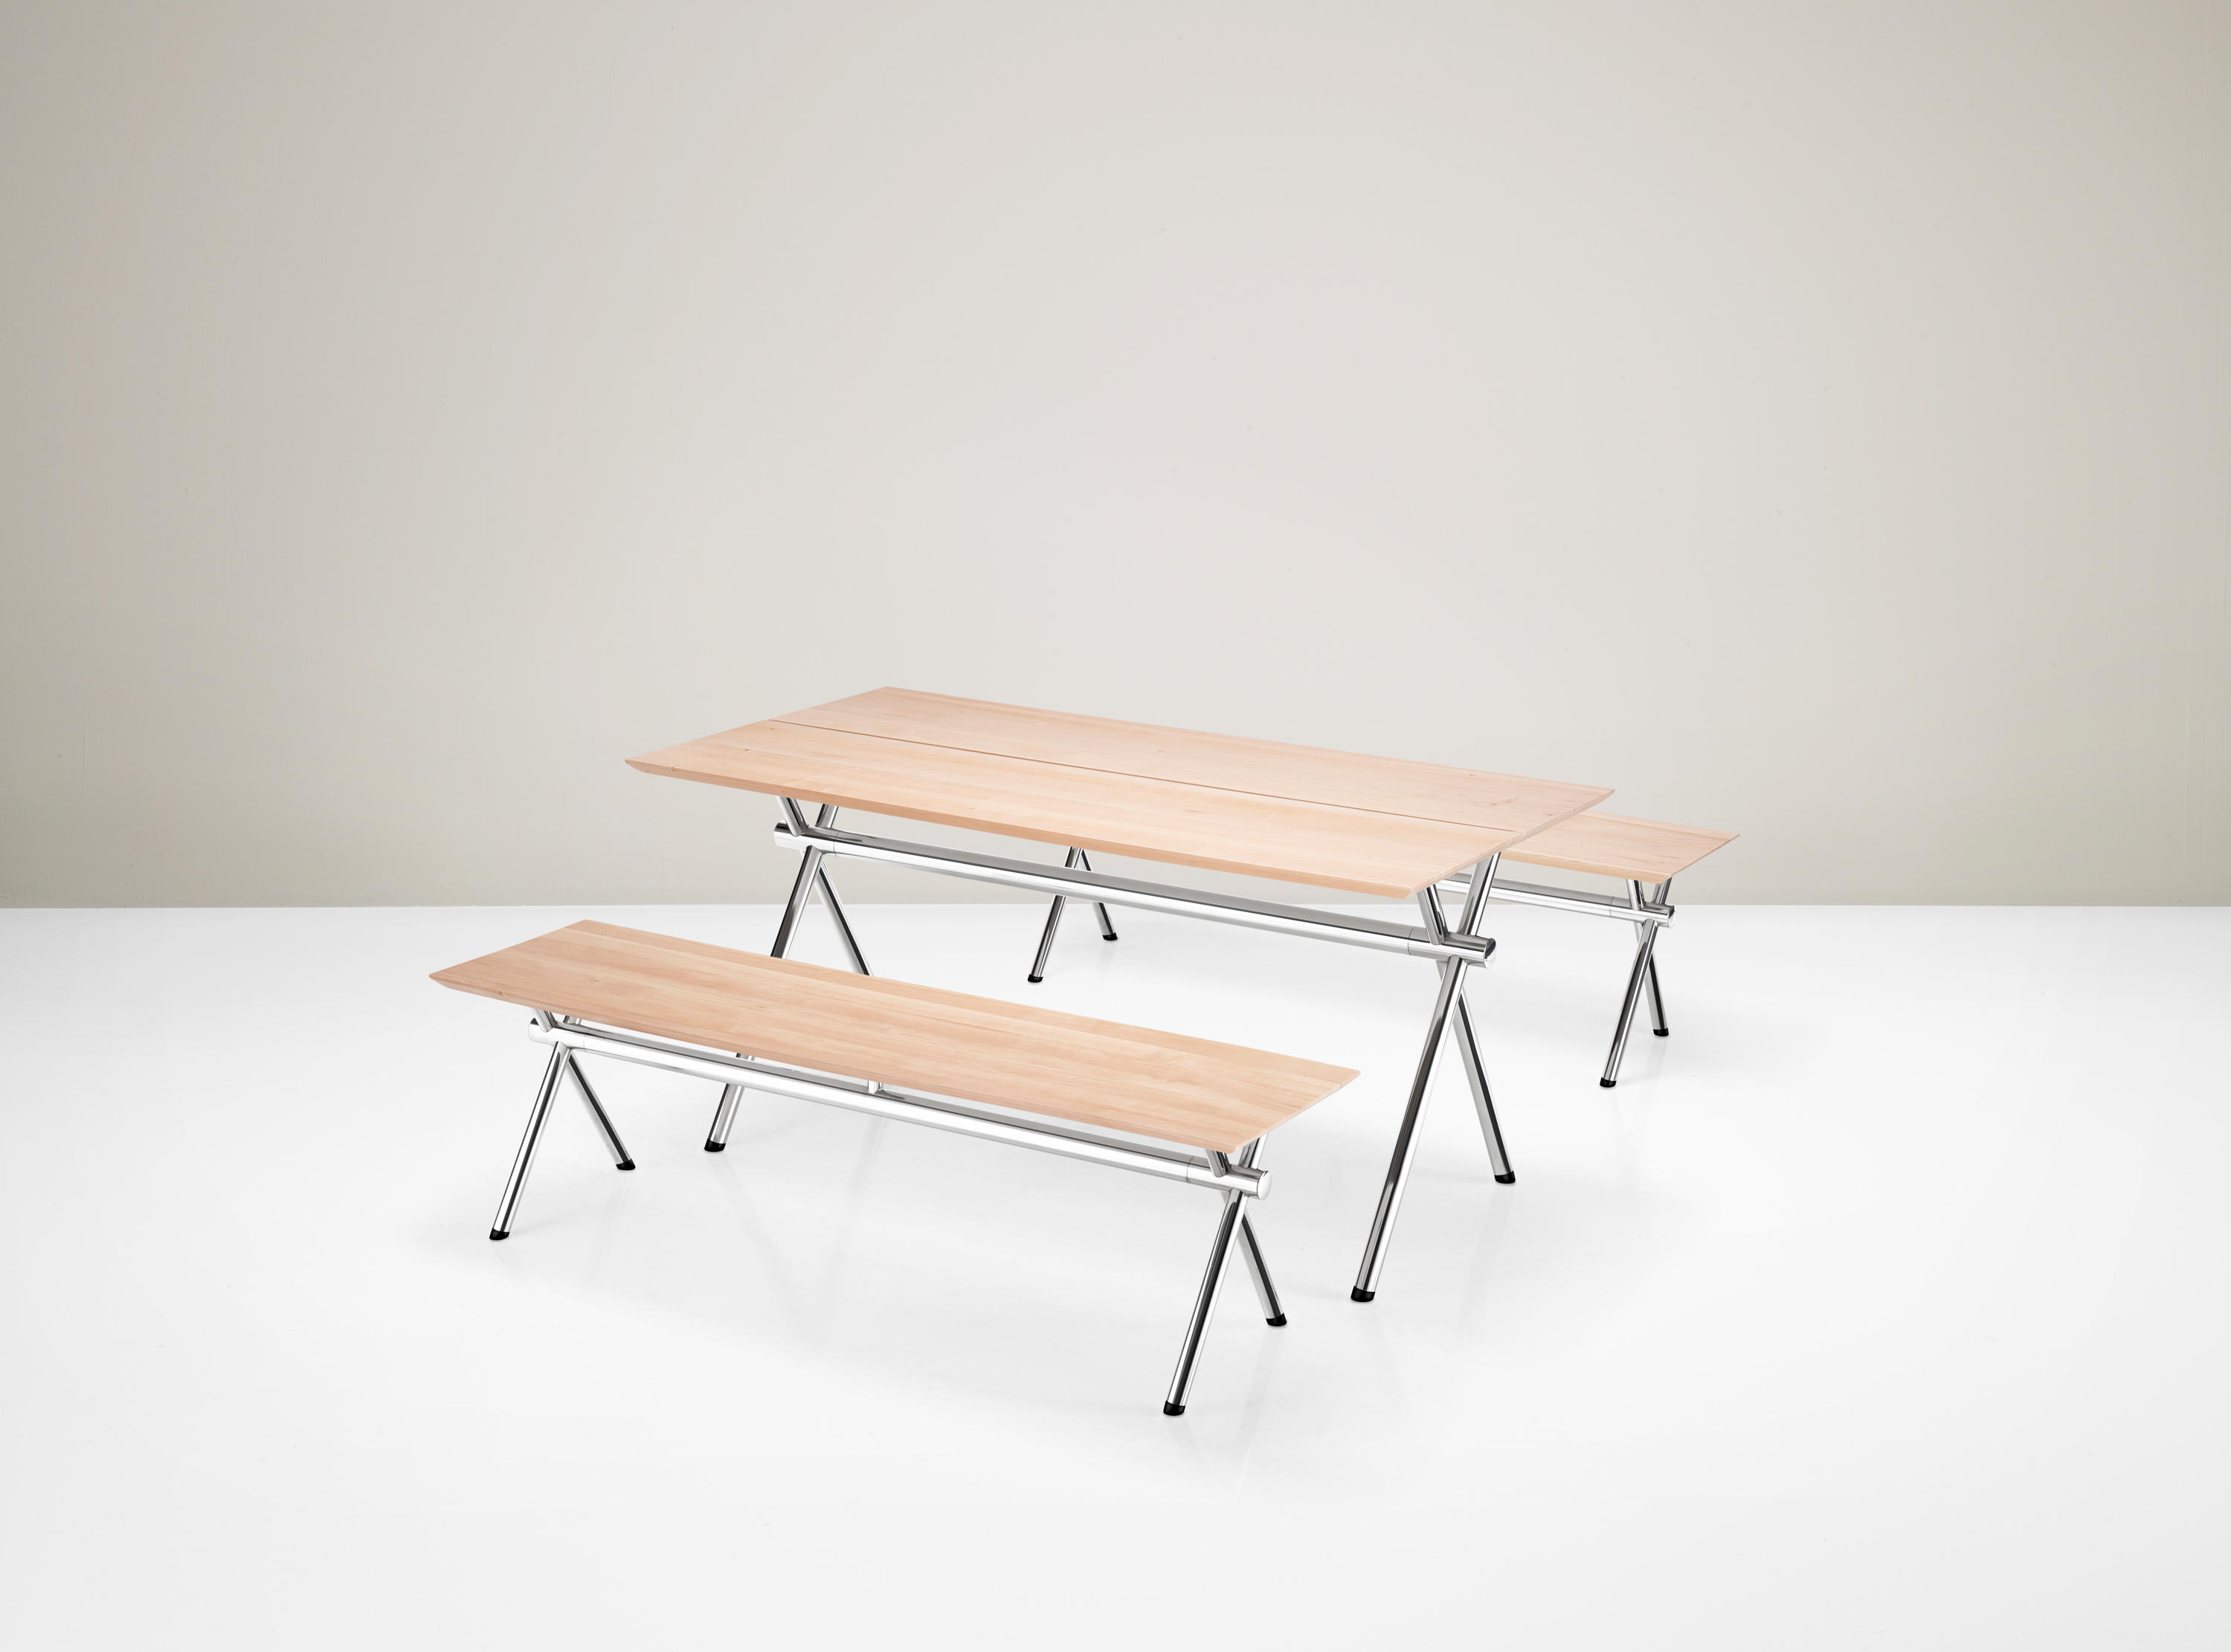 X TABLE AND BENCH Restaurant tables and benches from Piiroinen